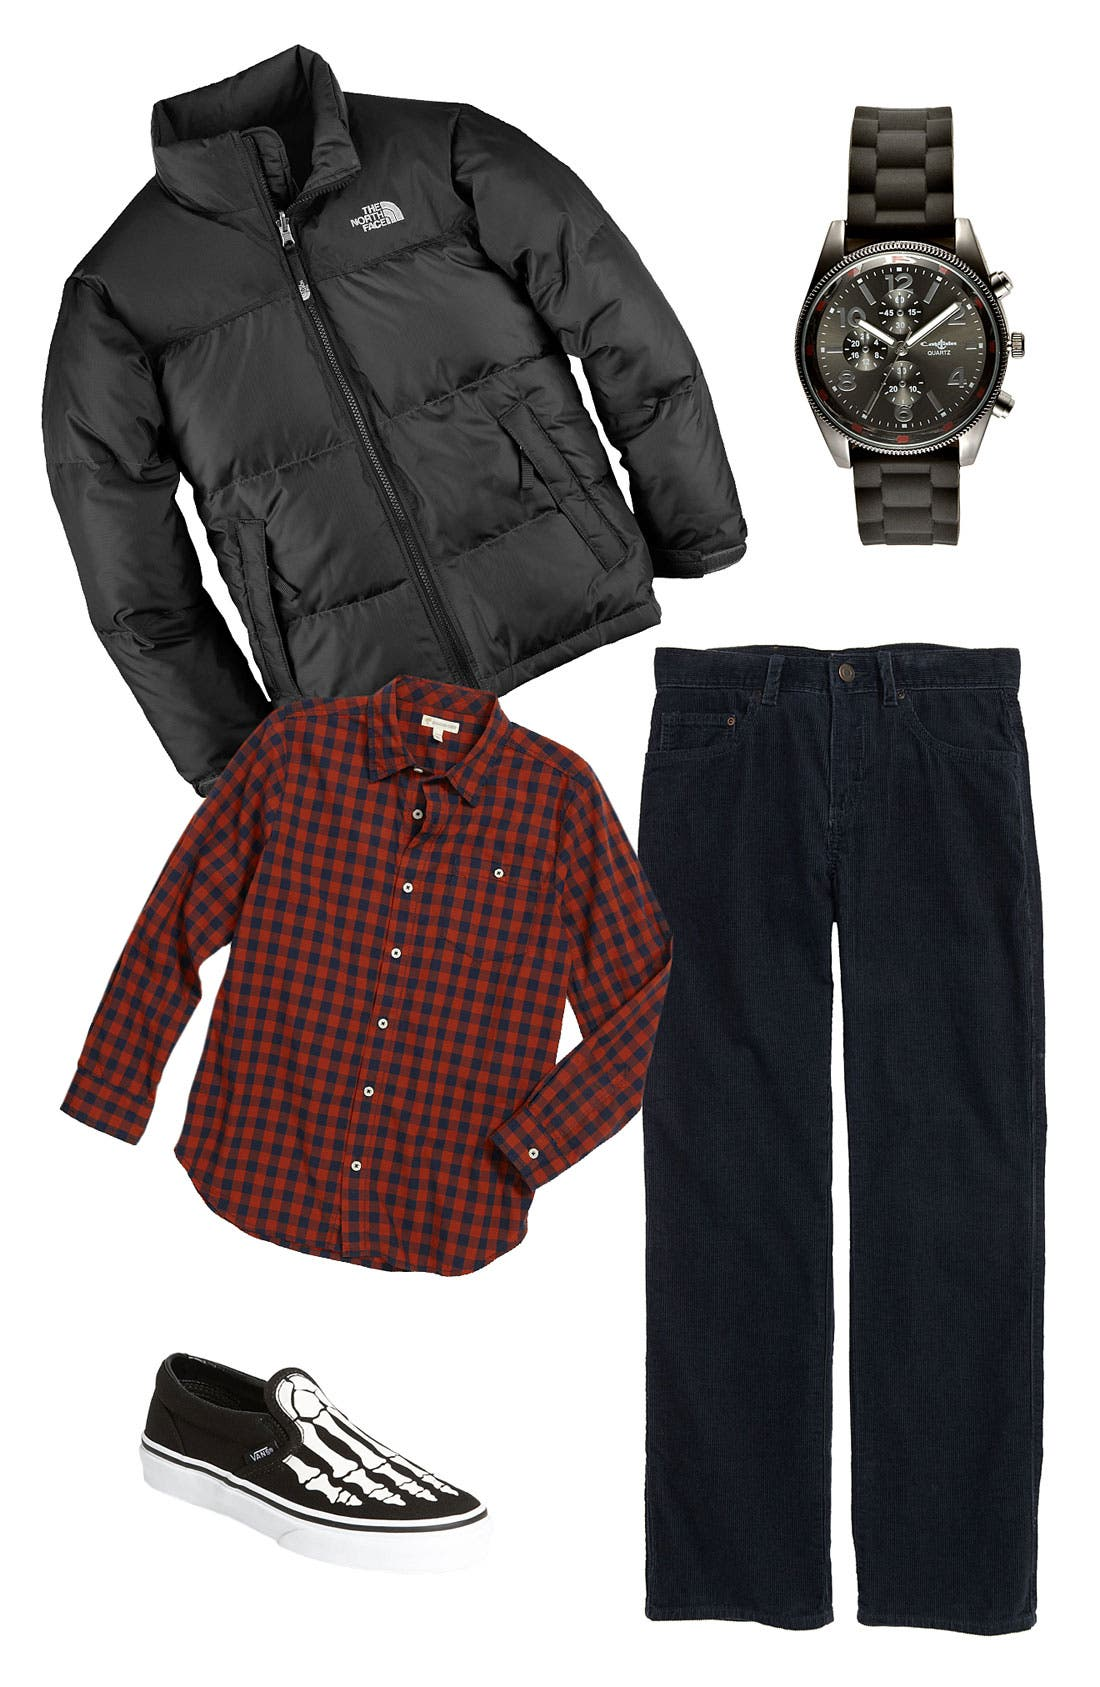 Main Image - The North Face Jacket & Tucker + Tate Shirt & Pants (Big Boys)